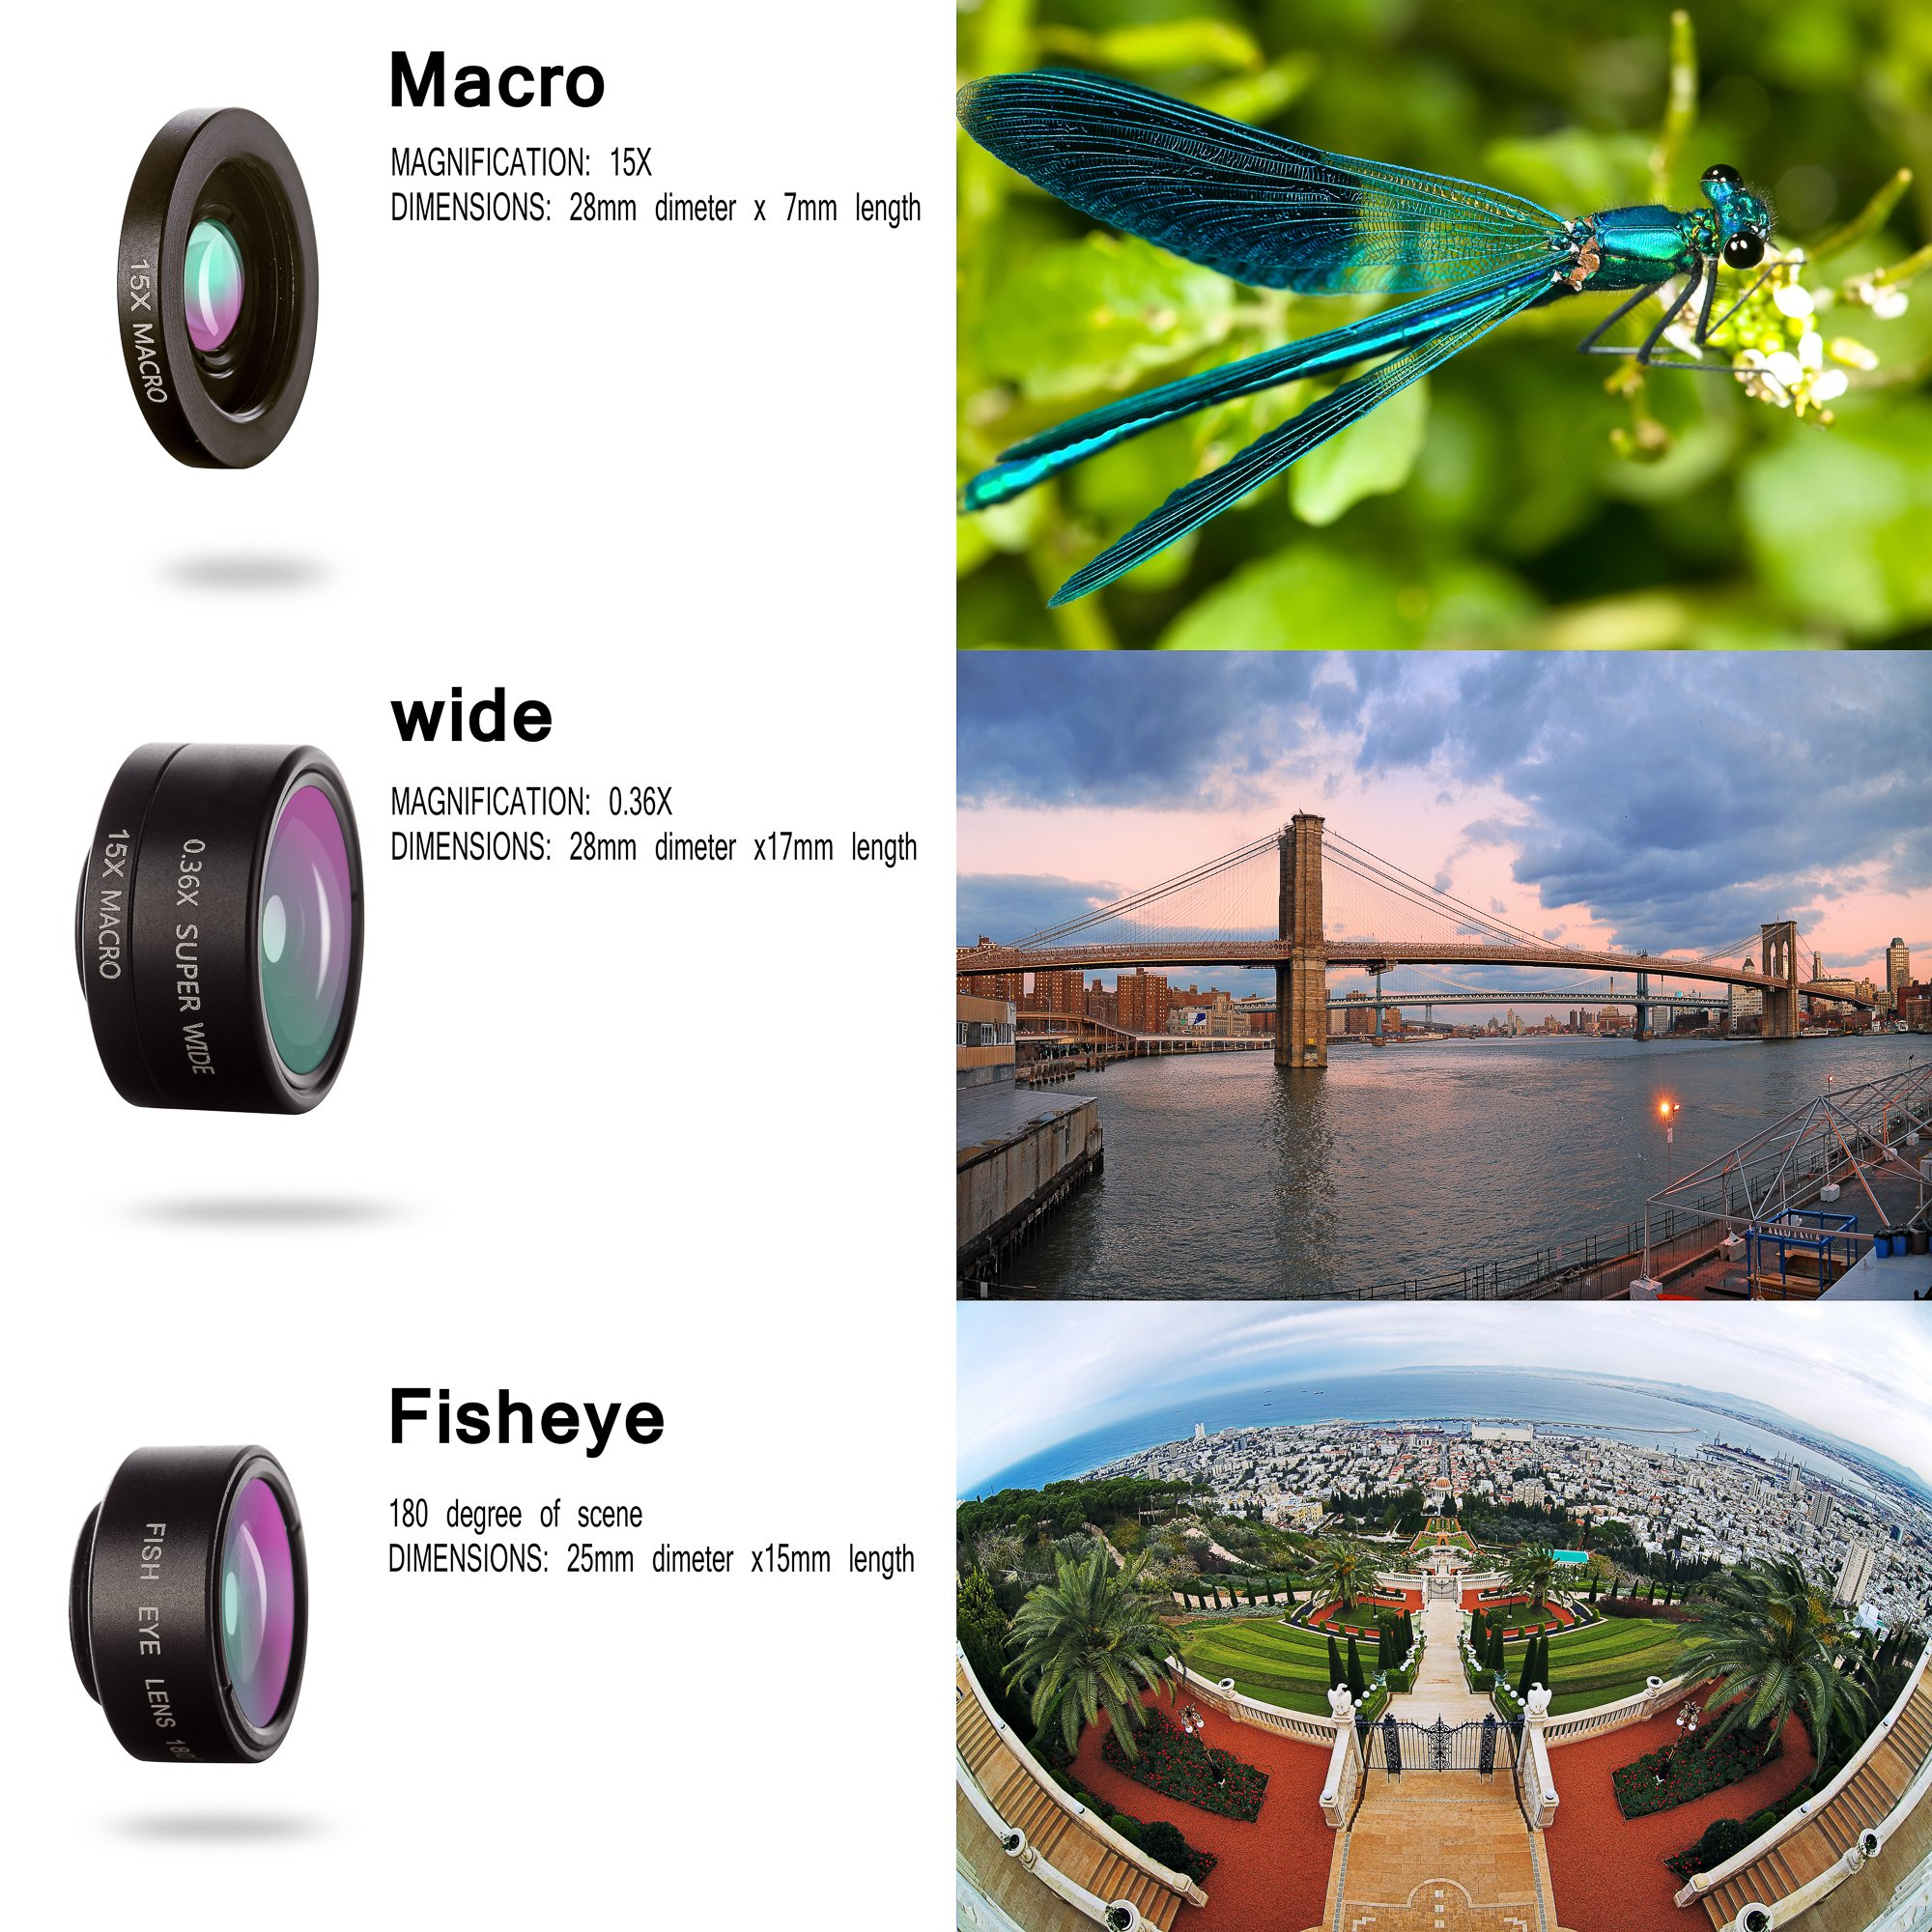 Cell Phone Camera Lens Kit, LS-PRO Best quality 3 in 1 Mobile Lens ,15x  Macro Lens+0 36x Super Wide Angle Lens+180° Fisheye Lens for iPhone 7/6s/6s